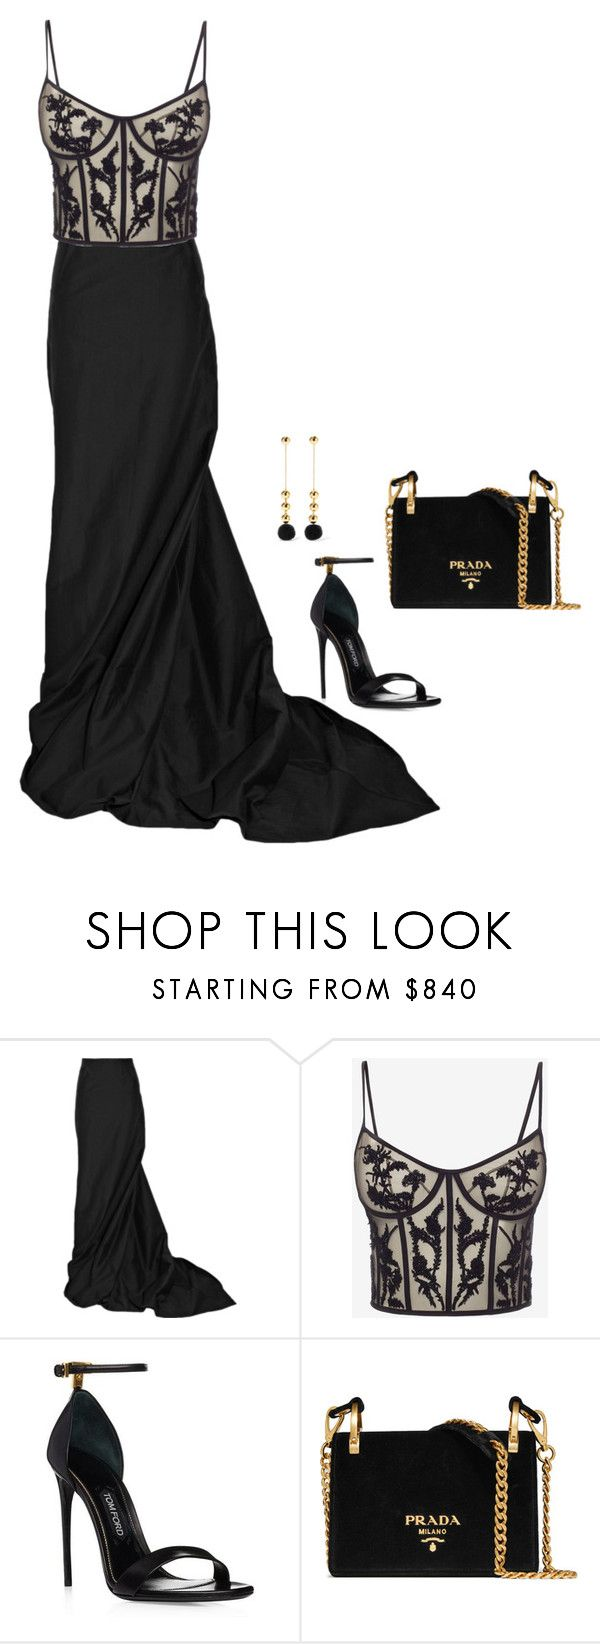 """Sem título #1977"" by mprocedi on Polyvore featuring moda, Rick Owens, Alexander McQueen, Prada e Elizabeth and James"